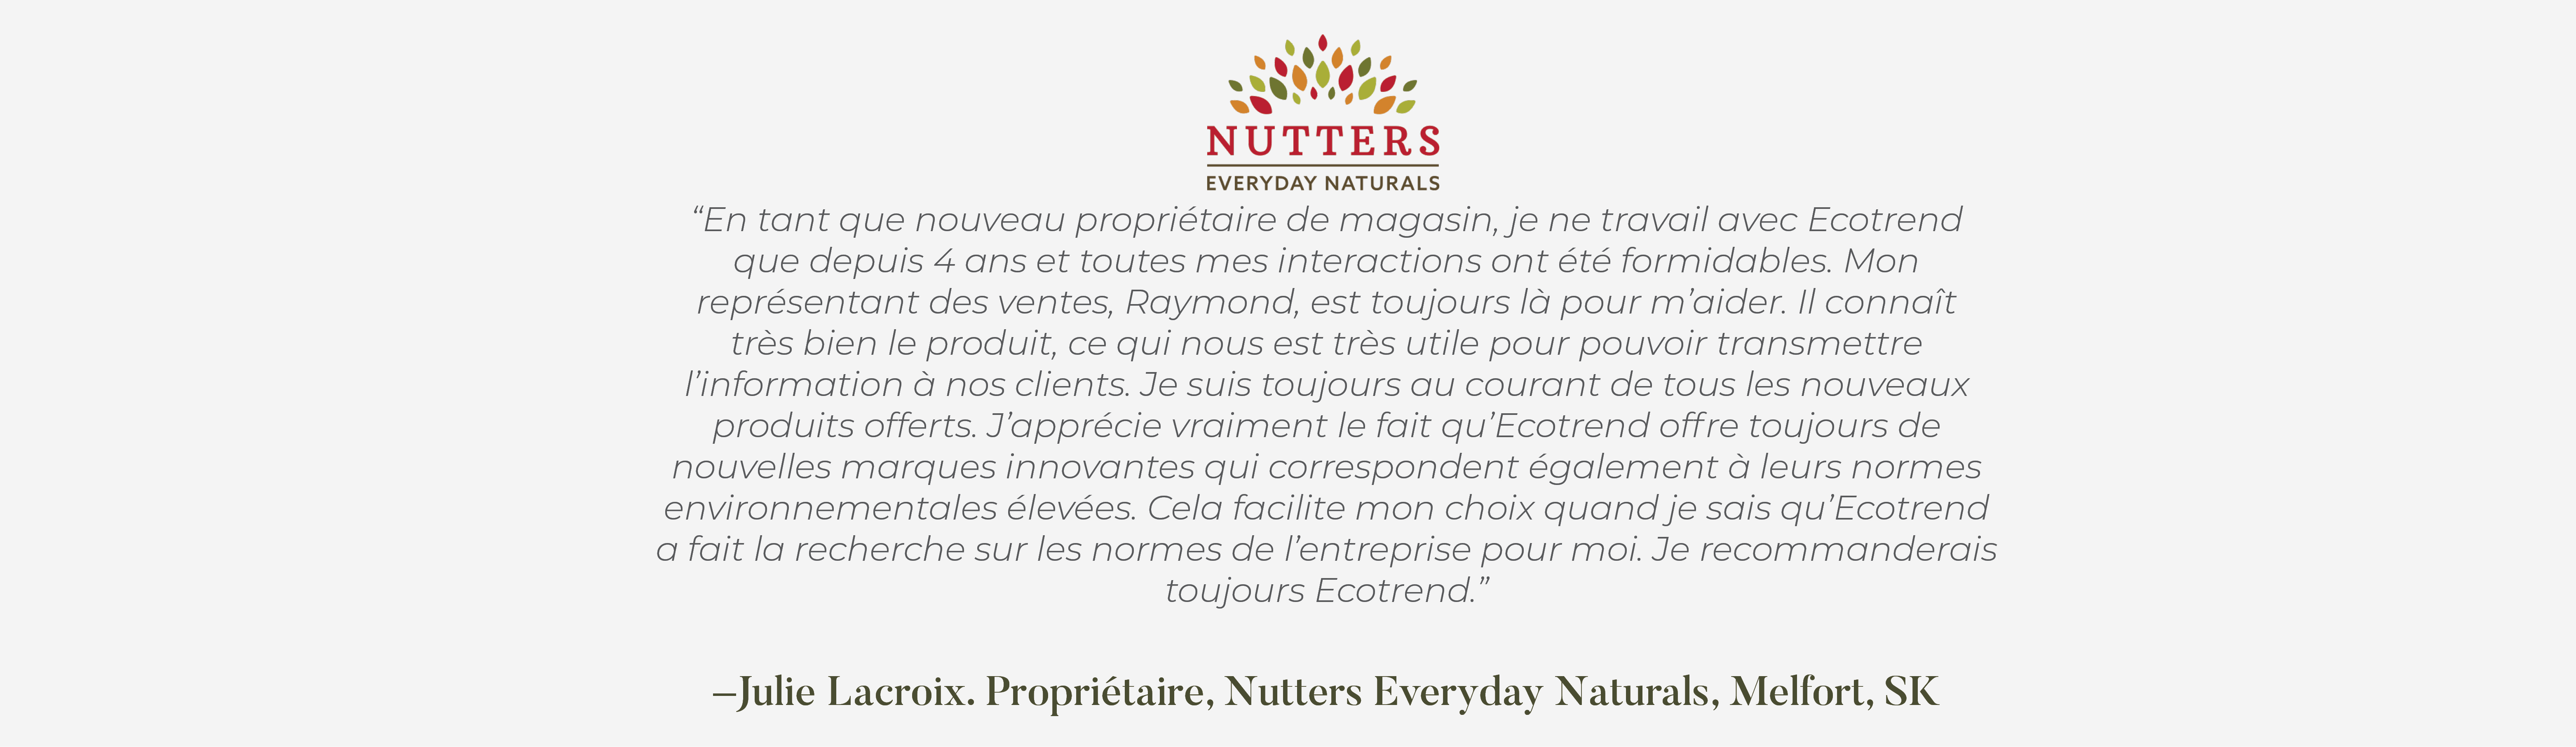 Julie Lacroix. Owner of Nutters Everyday Naturals Melfort SK testimonial